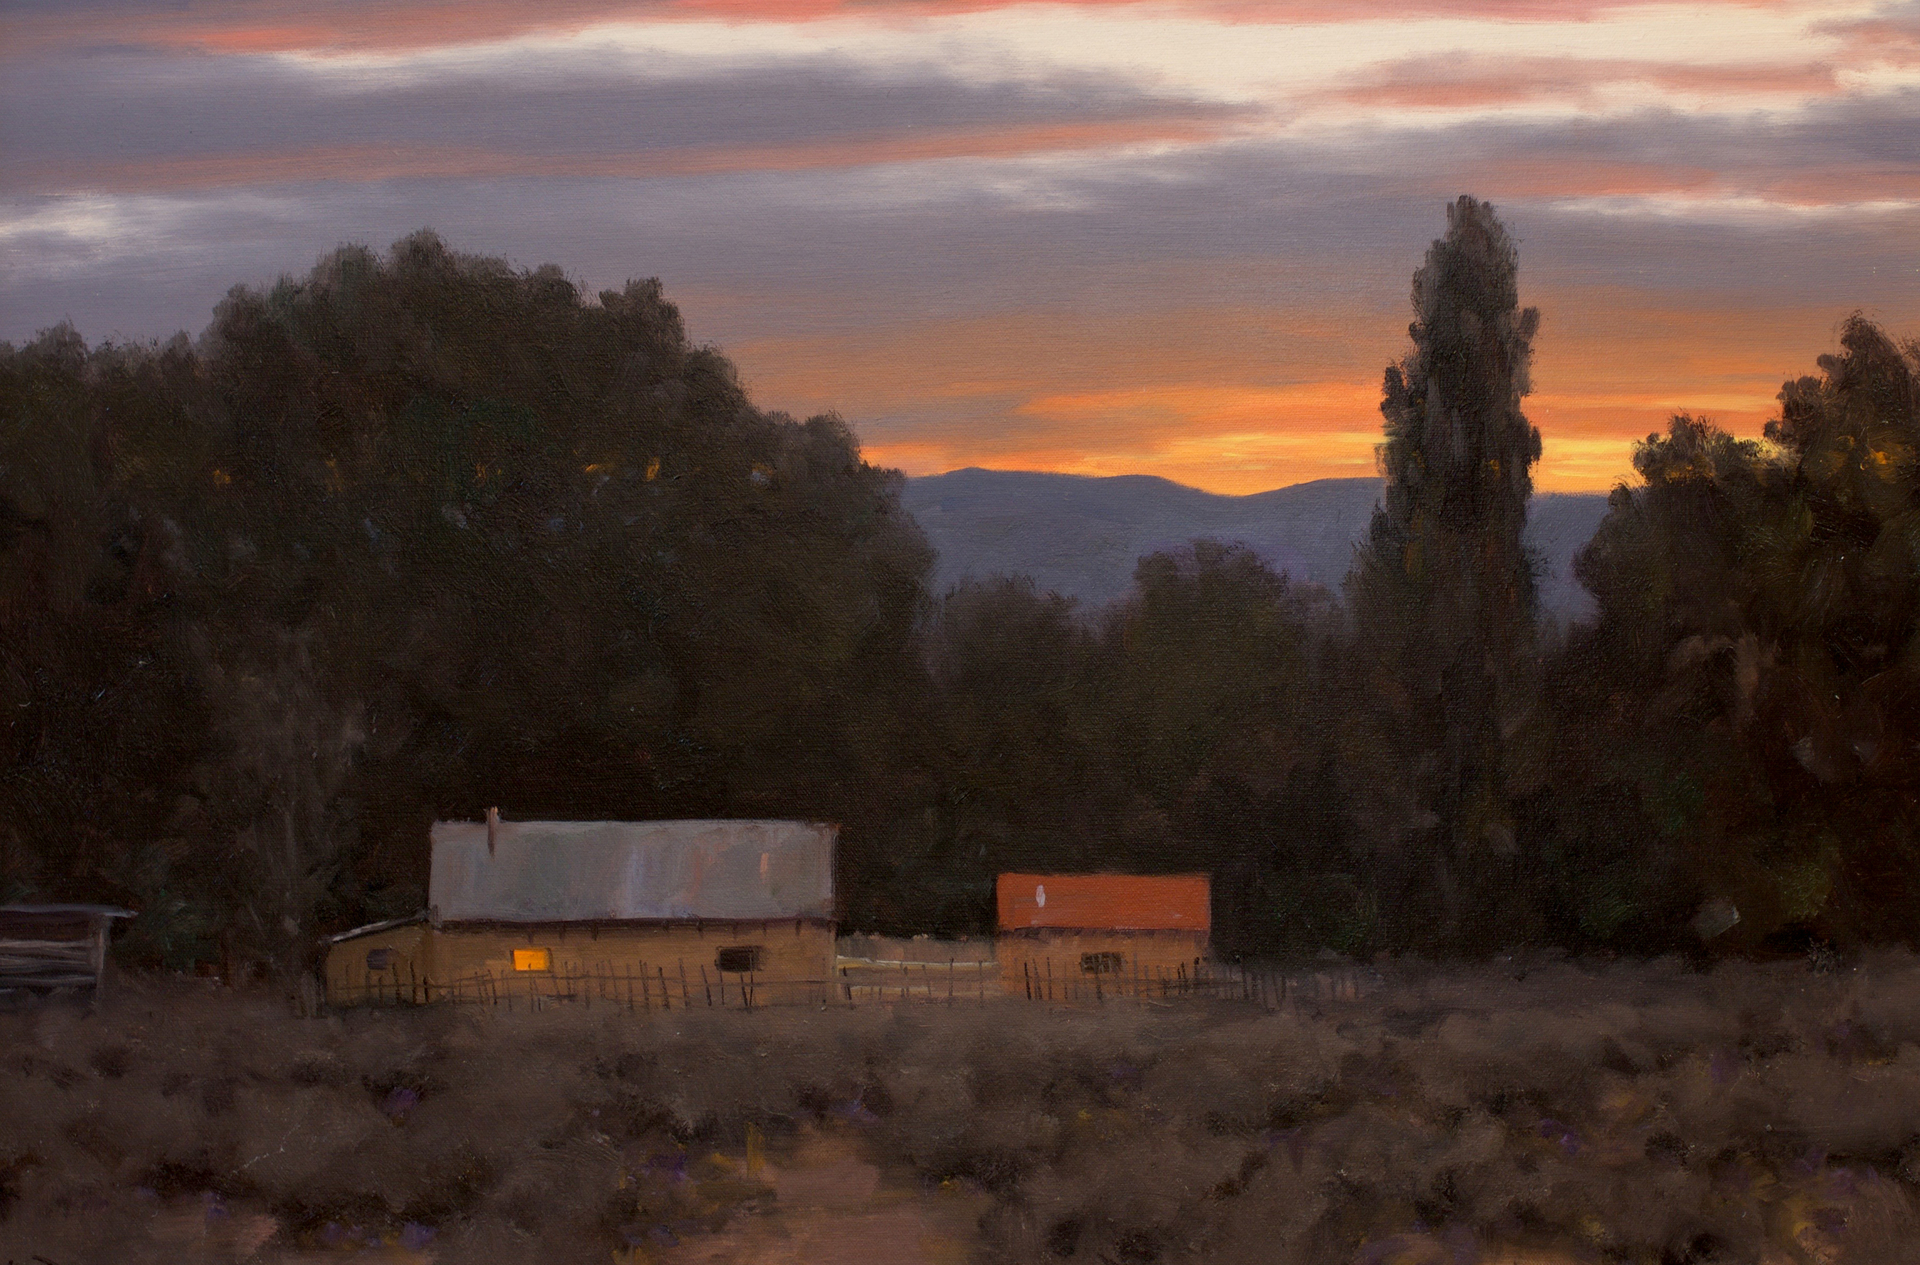 In the Late Evening Light by Stephen Day